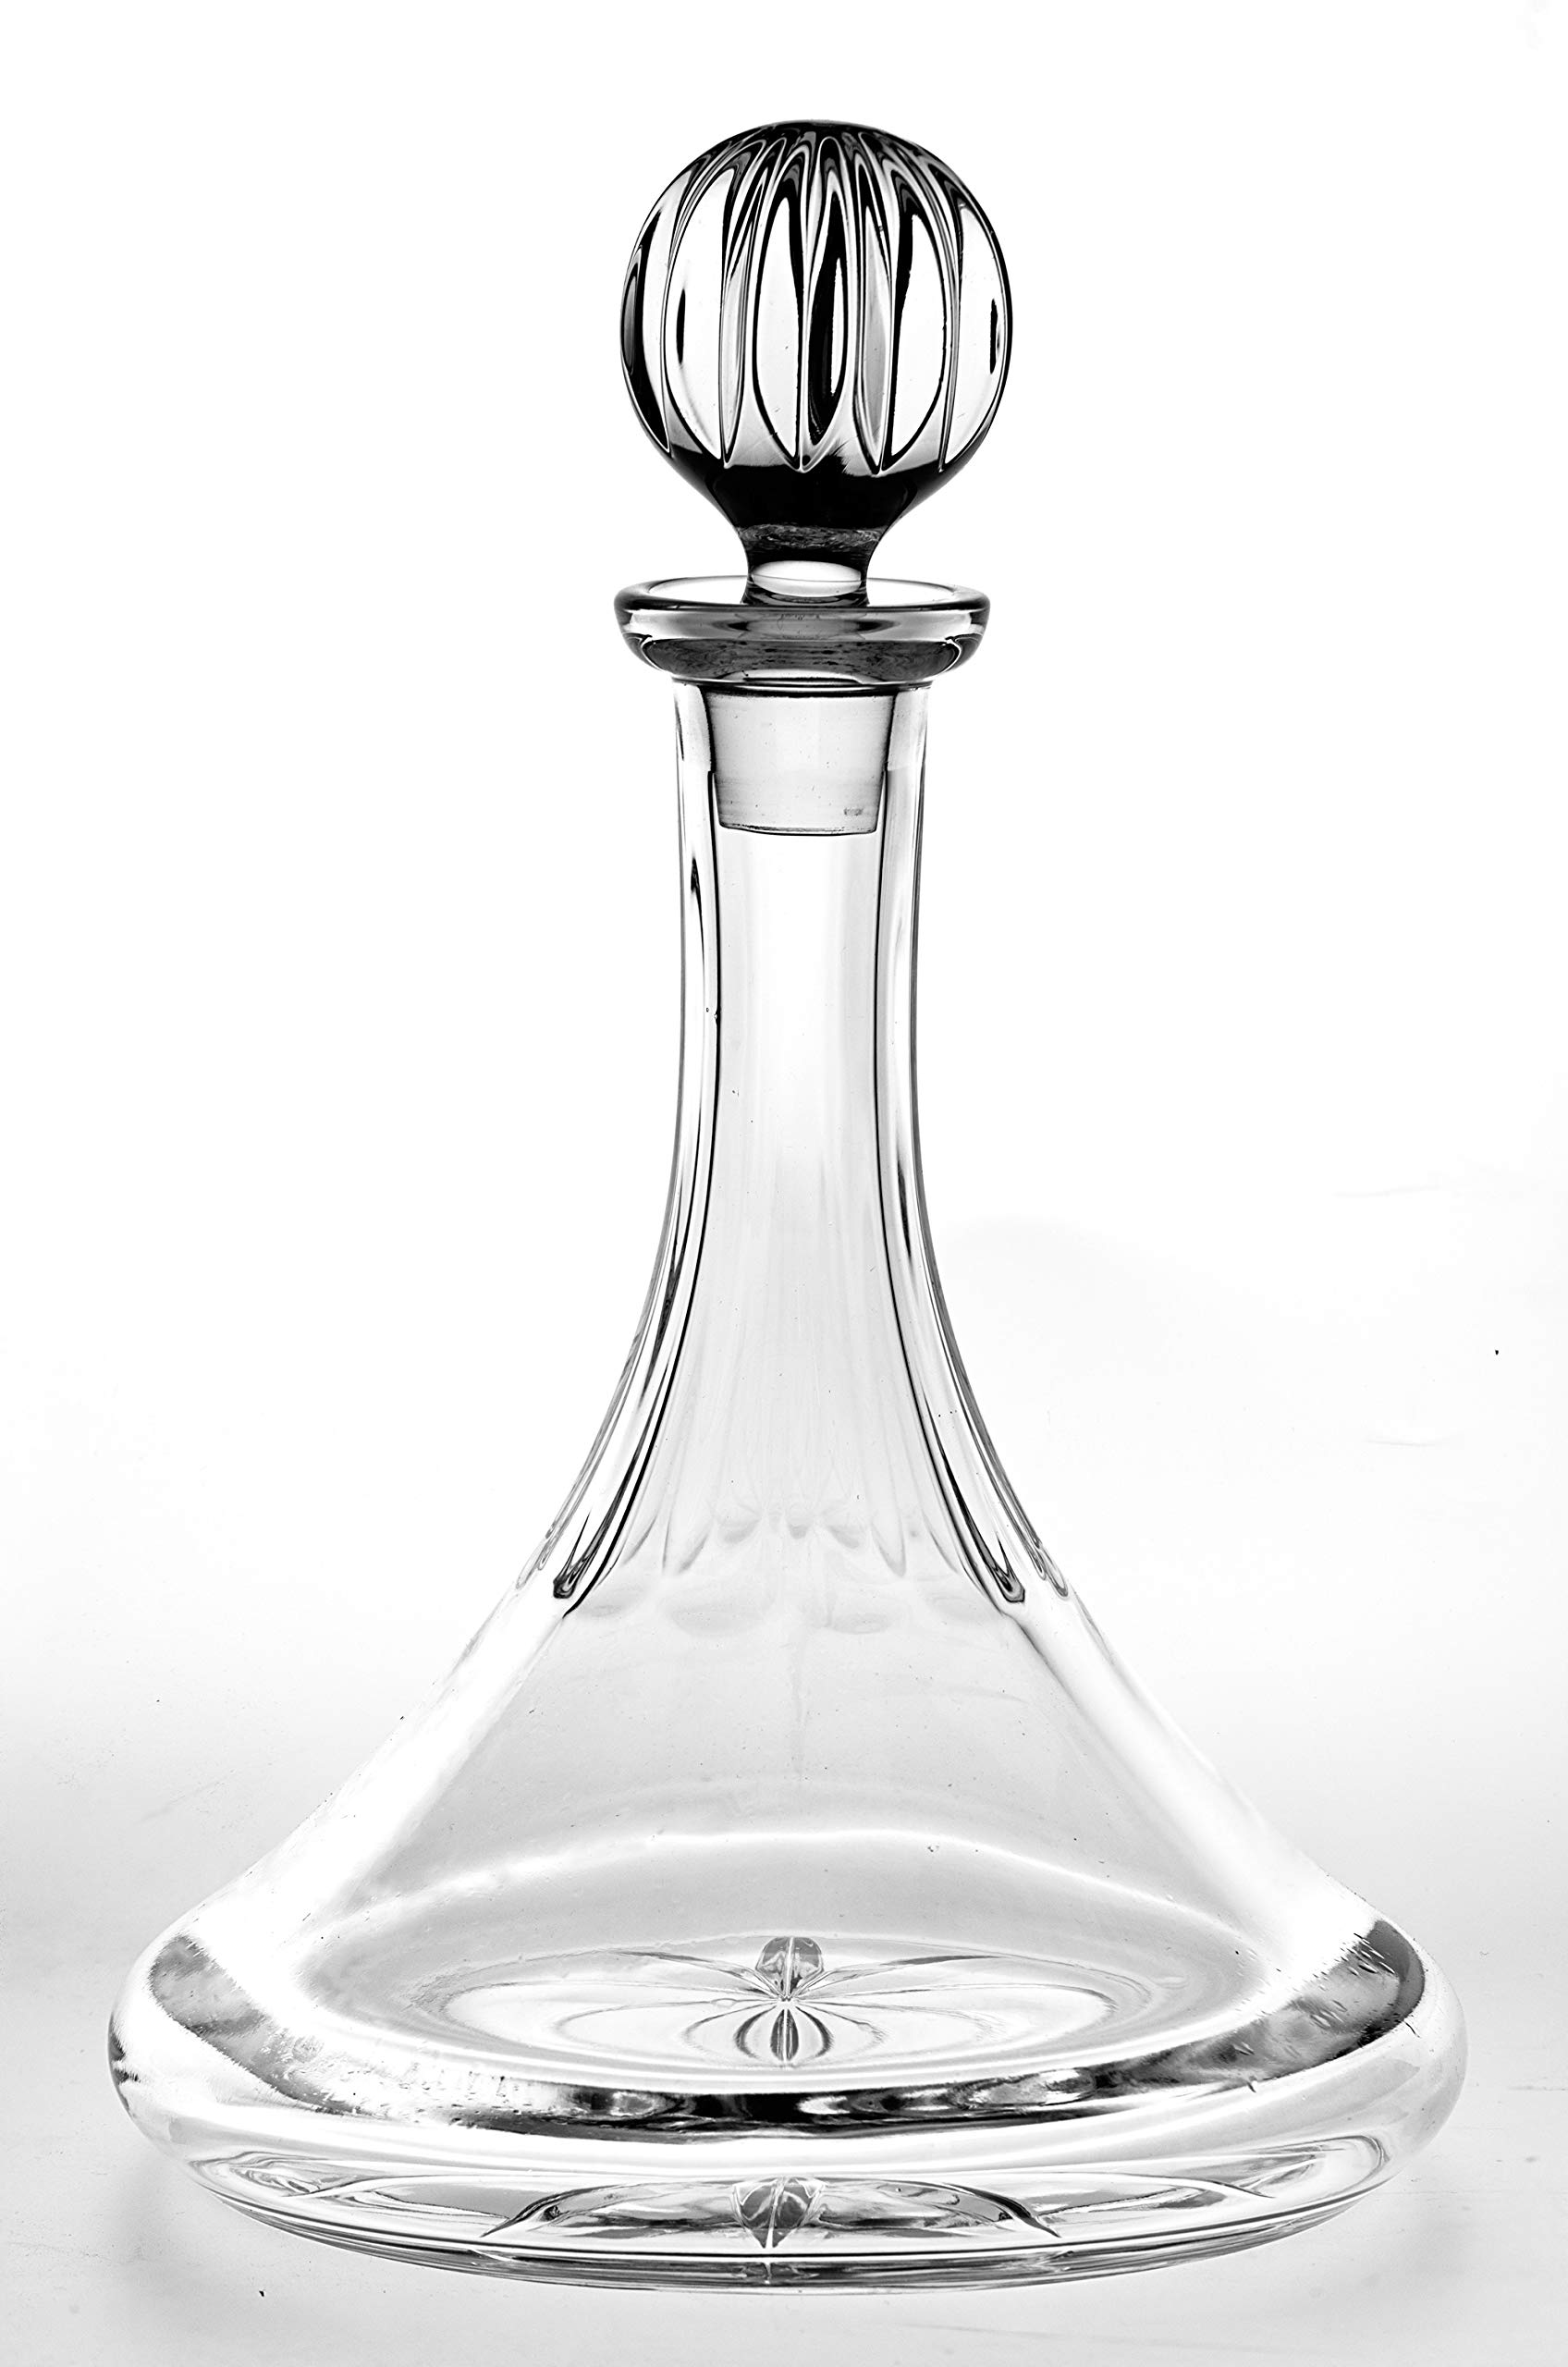 Crystal Ships Decanter - Ship Captains Decanter - 32 oz. - With Stopper - Cut Crystal - Made in Europe - By Barski by Barski